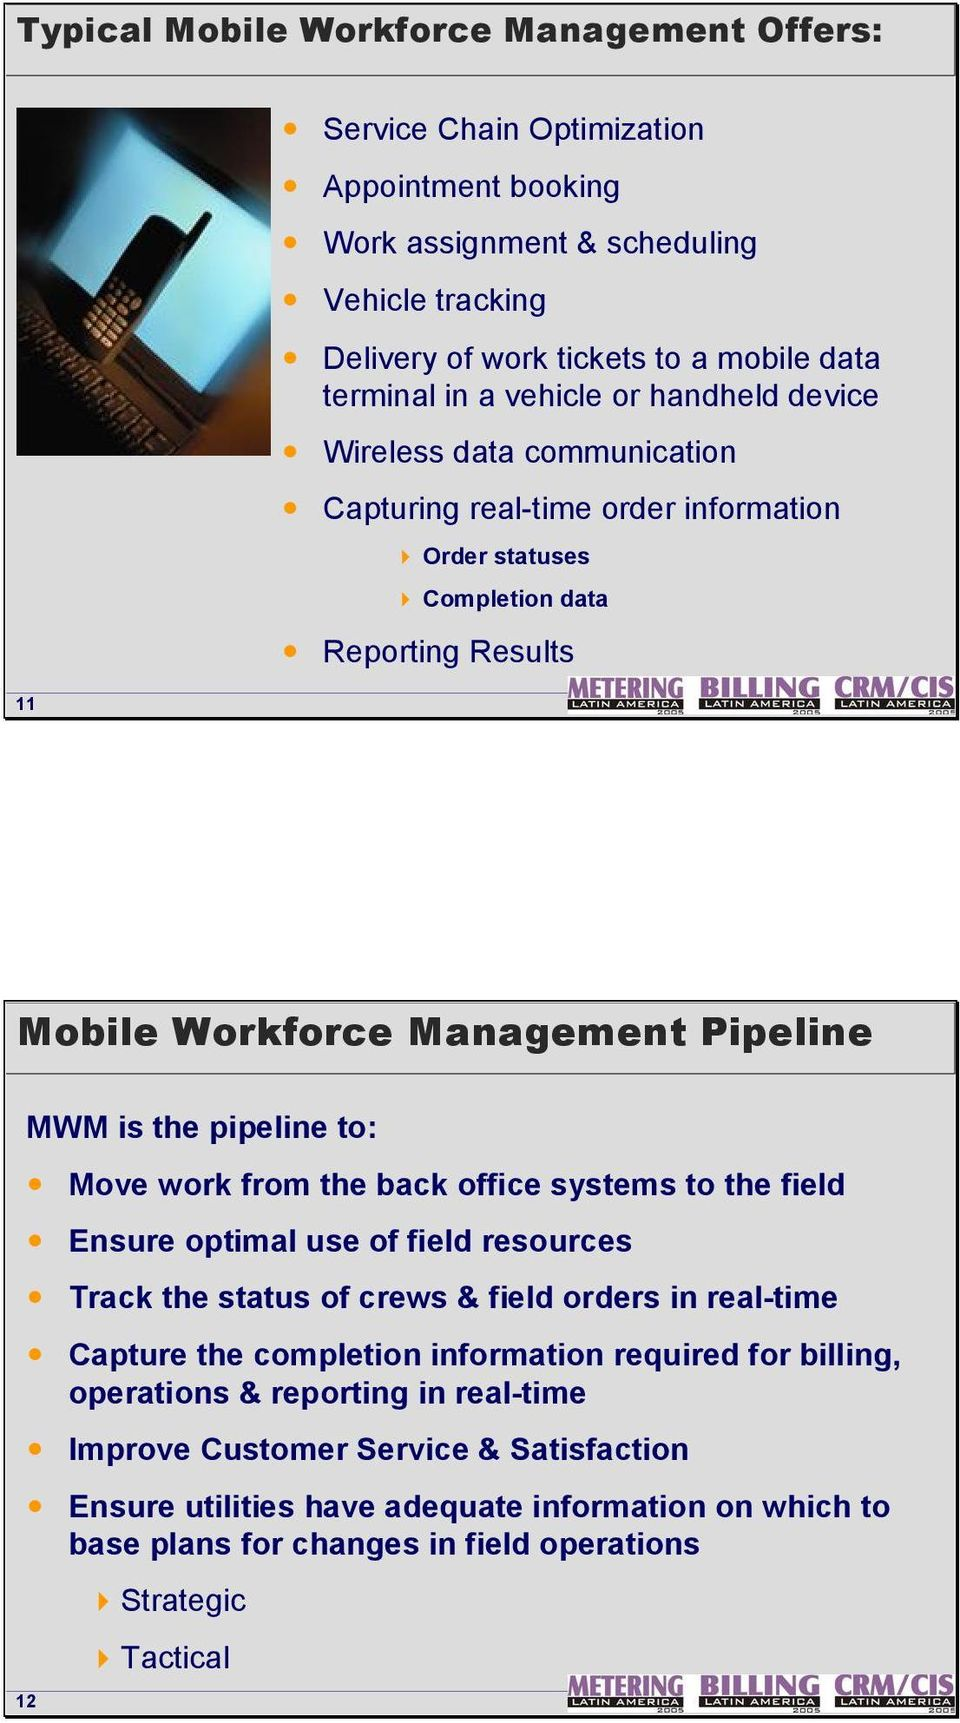 pipeline to: Move work from the back office systems to the field Ensure optimal use of field resources Track the status of crews & field orders in real time Capture the completion information